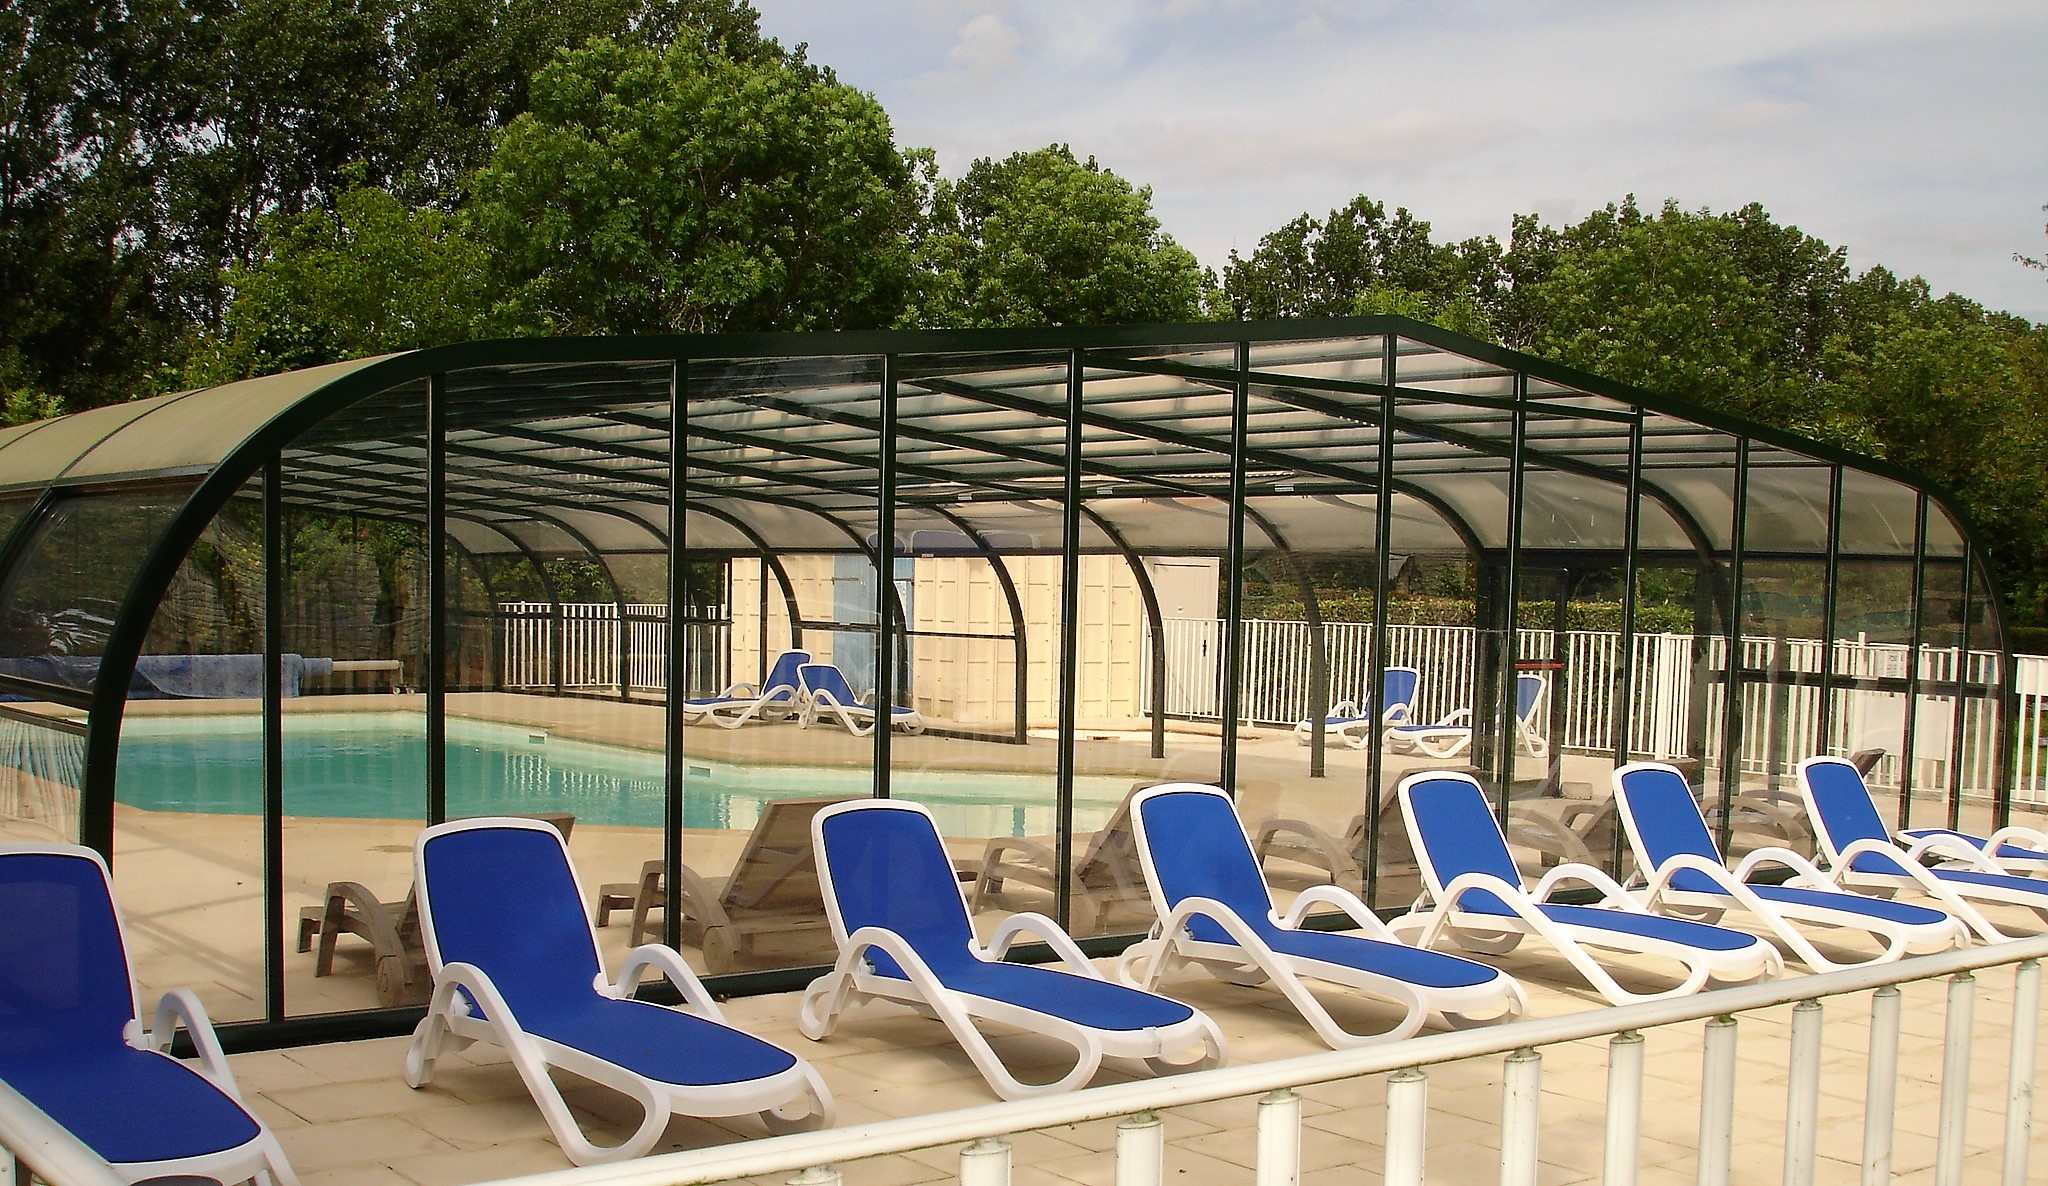 Camping le septentrion brulon camp de tourisme for Piscine couverte